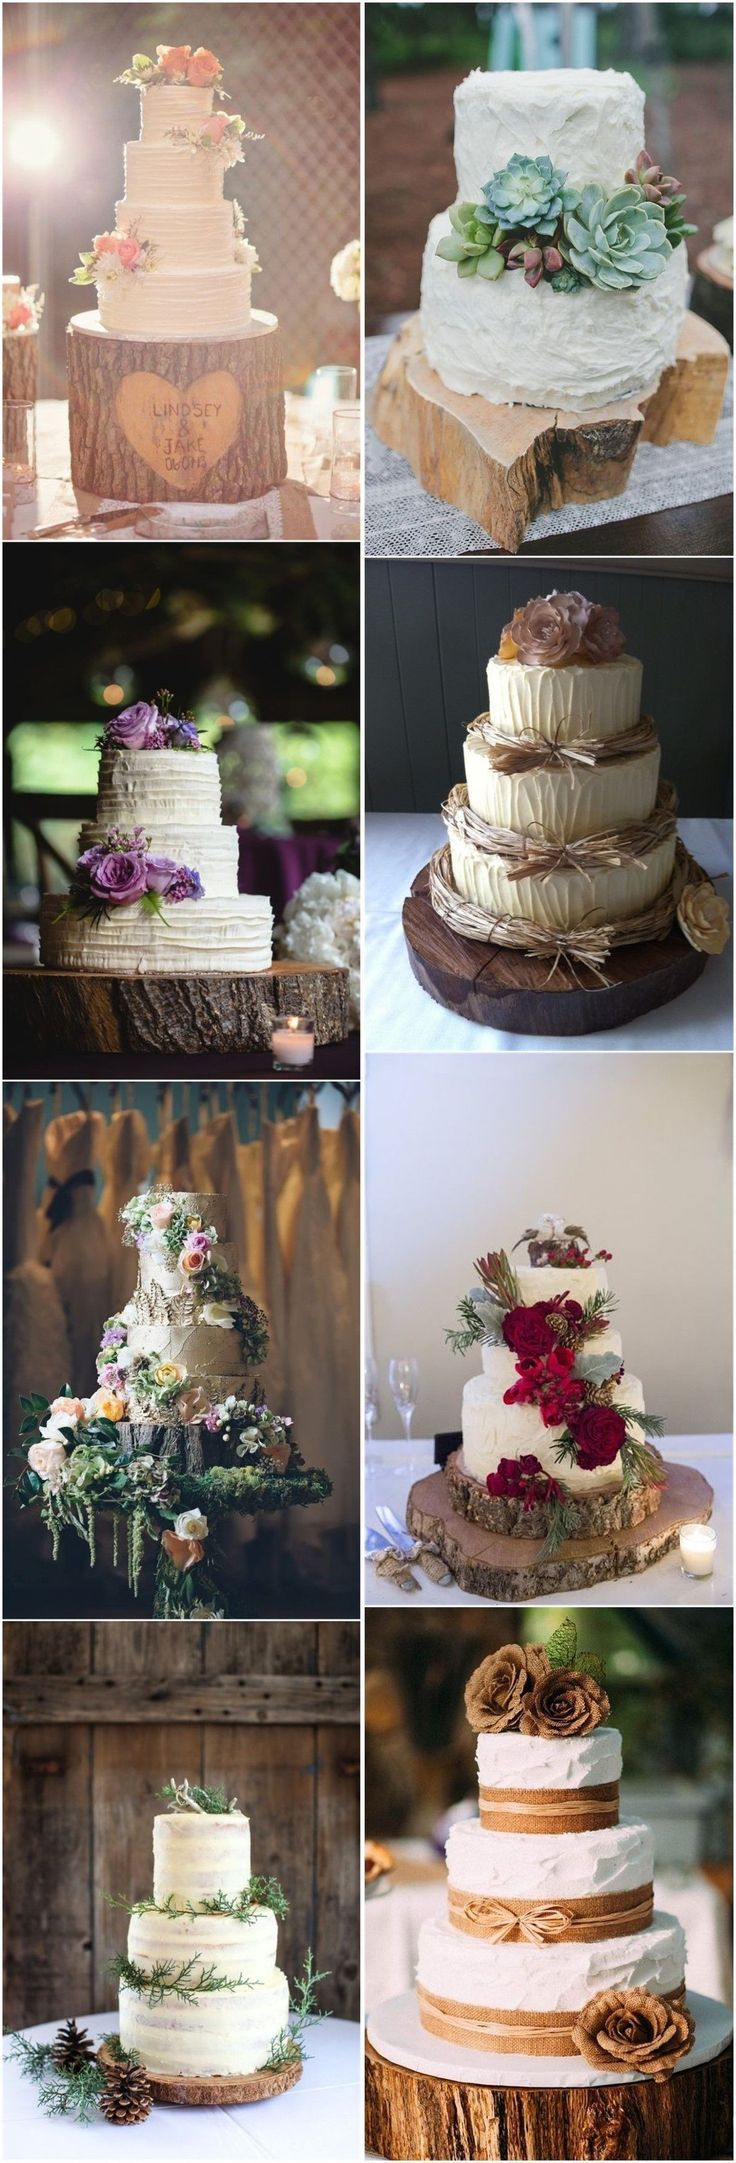 Country Weddings » 20 Rustic Tree Stumps Wedding Cakes for Your Country Wedding » ❤️ See more: http://www.weddinginclude.com/2017/06/rustic-tree-stumps-wedding-cakes-for-your-country-wedding/ #rusticweddingcakes #weddingcakes #countryweddingcakes